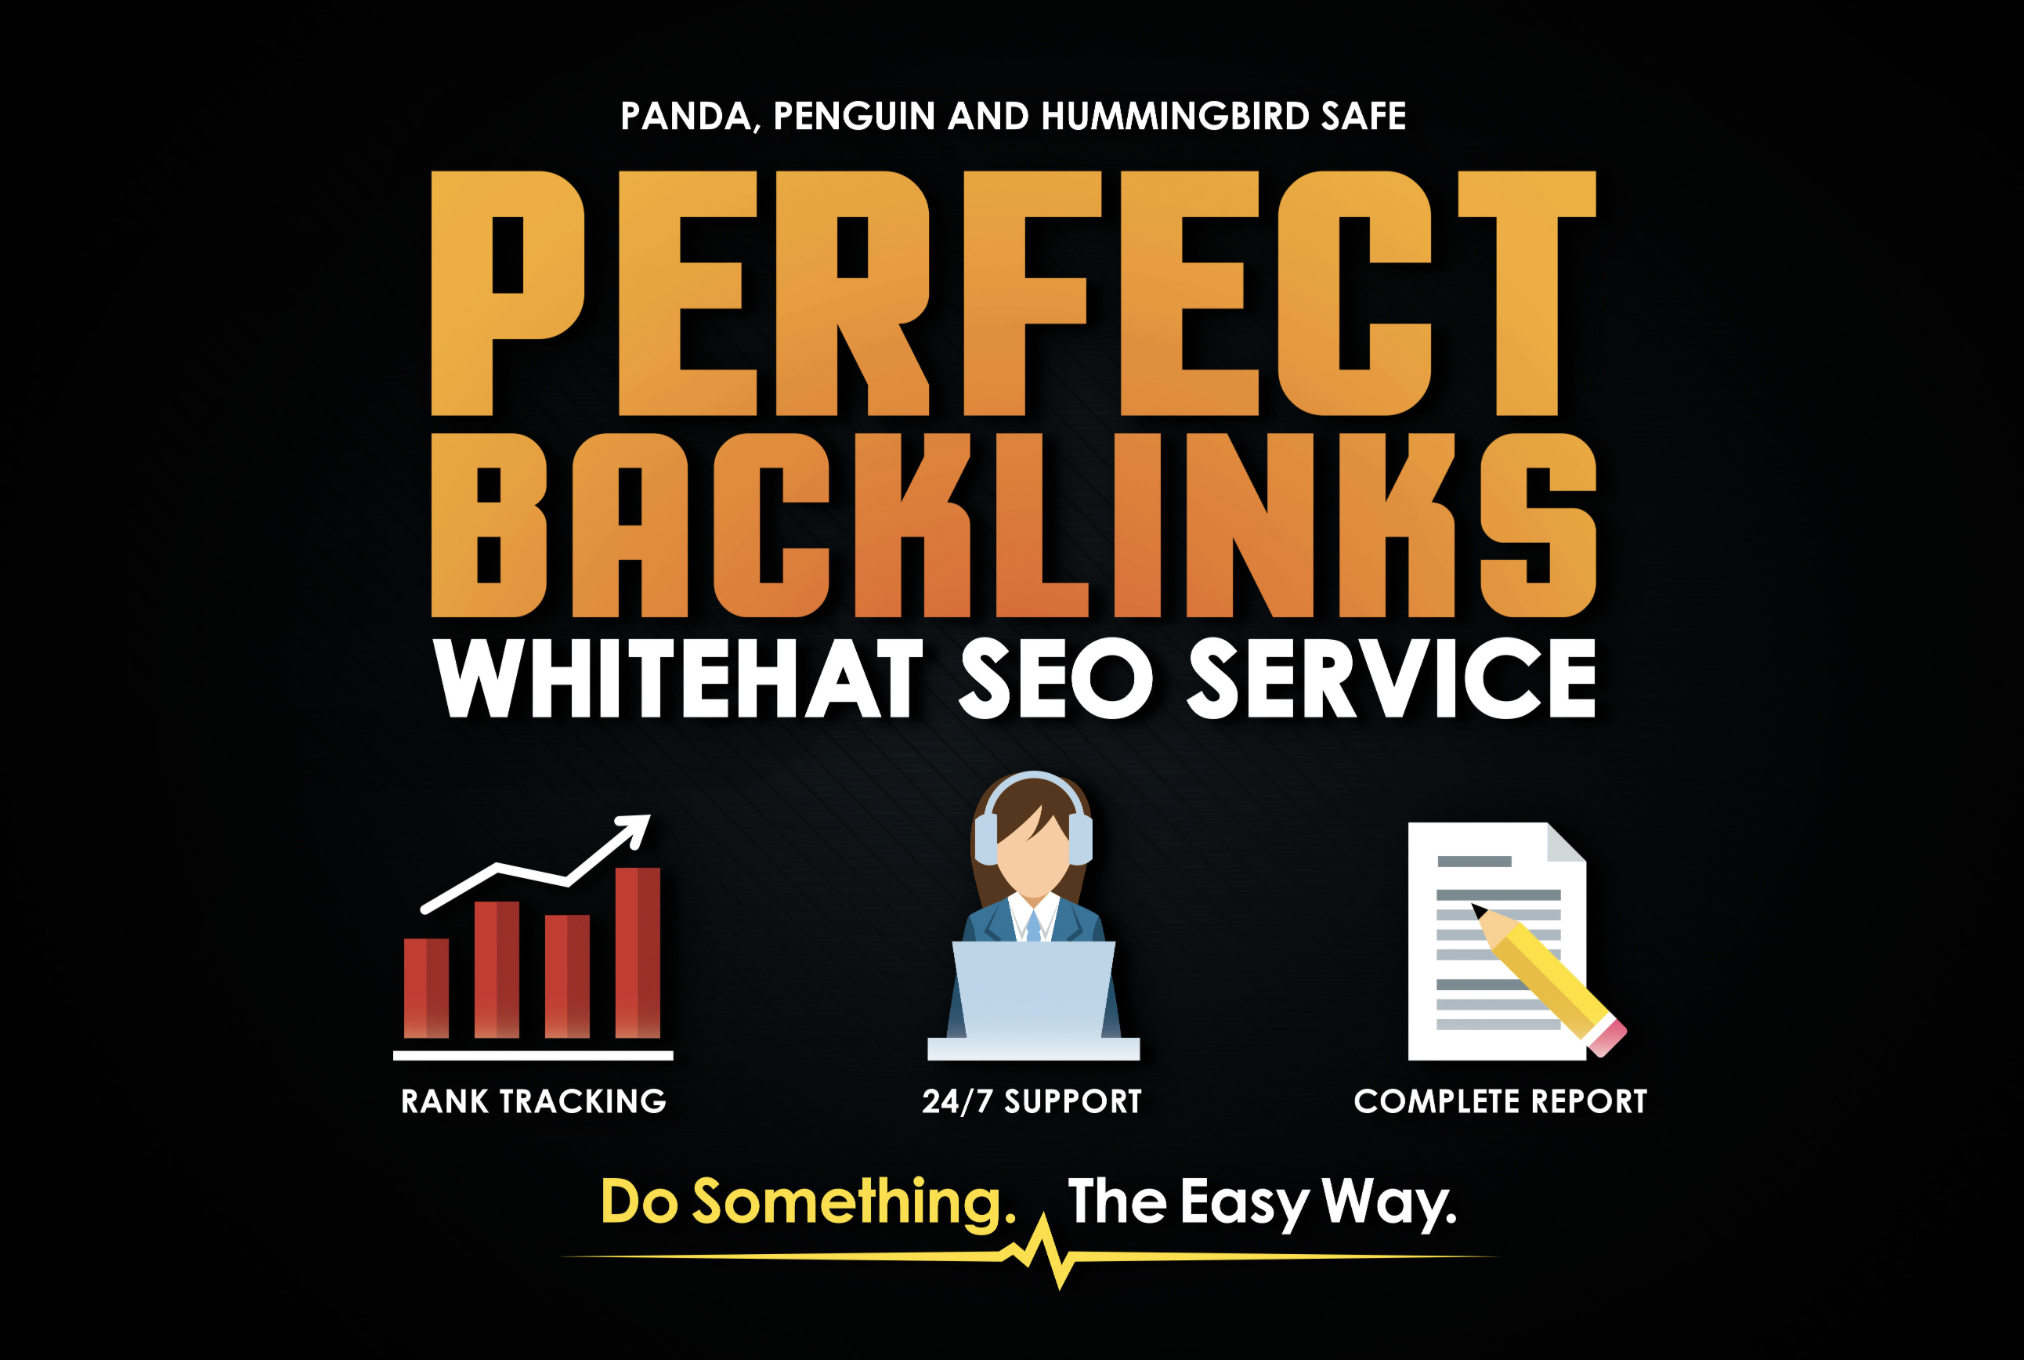 DA 65+Fire Your Google Ranking With 50 Safe High Authority SEO contextual backlinks